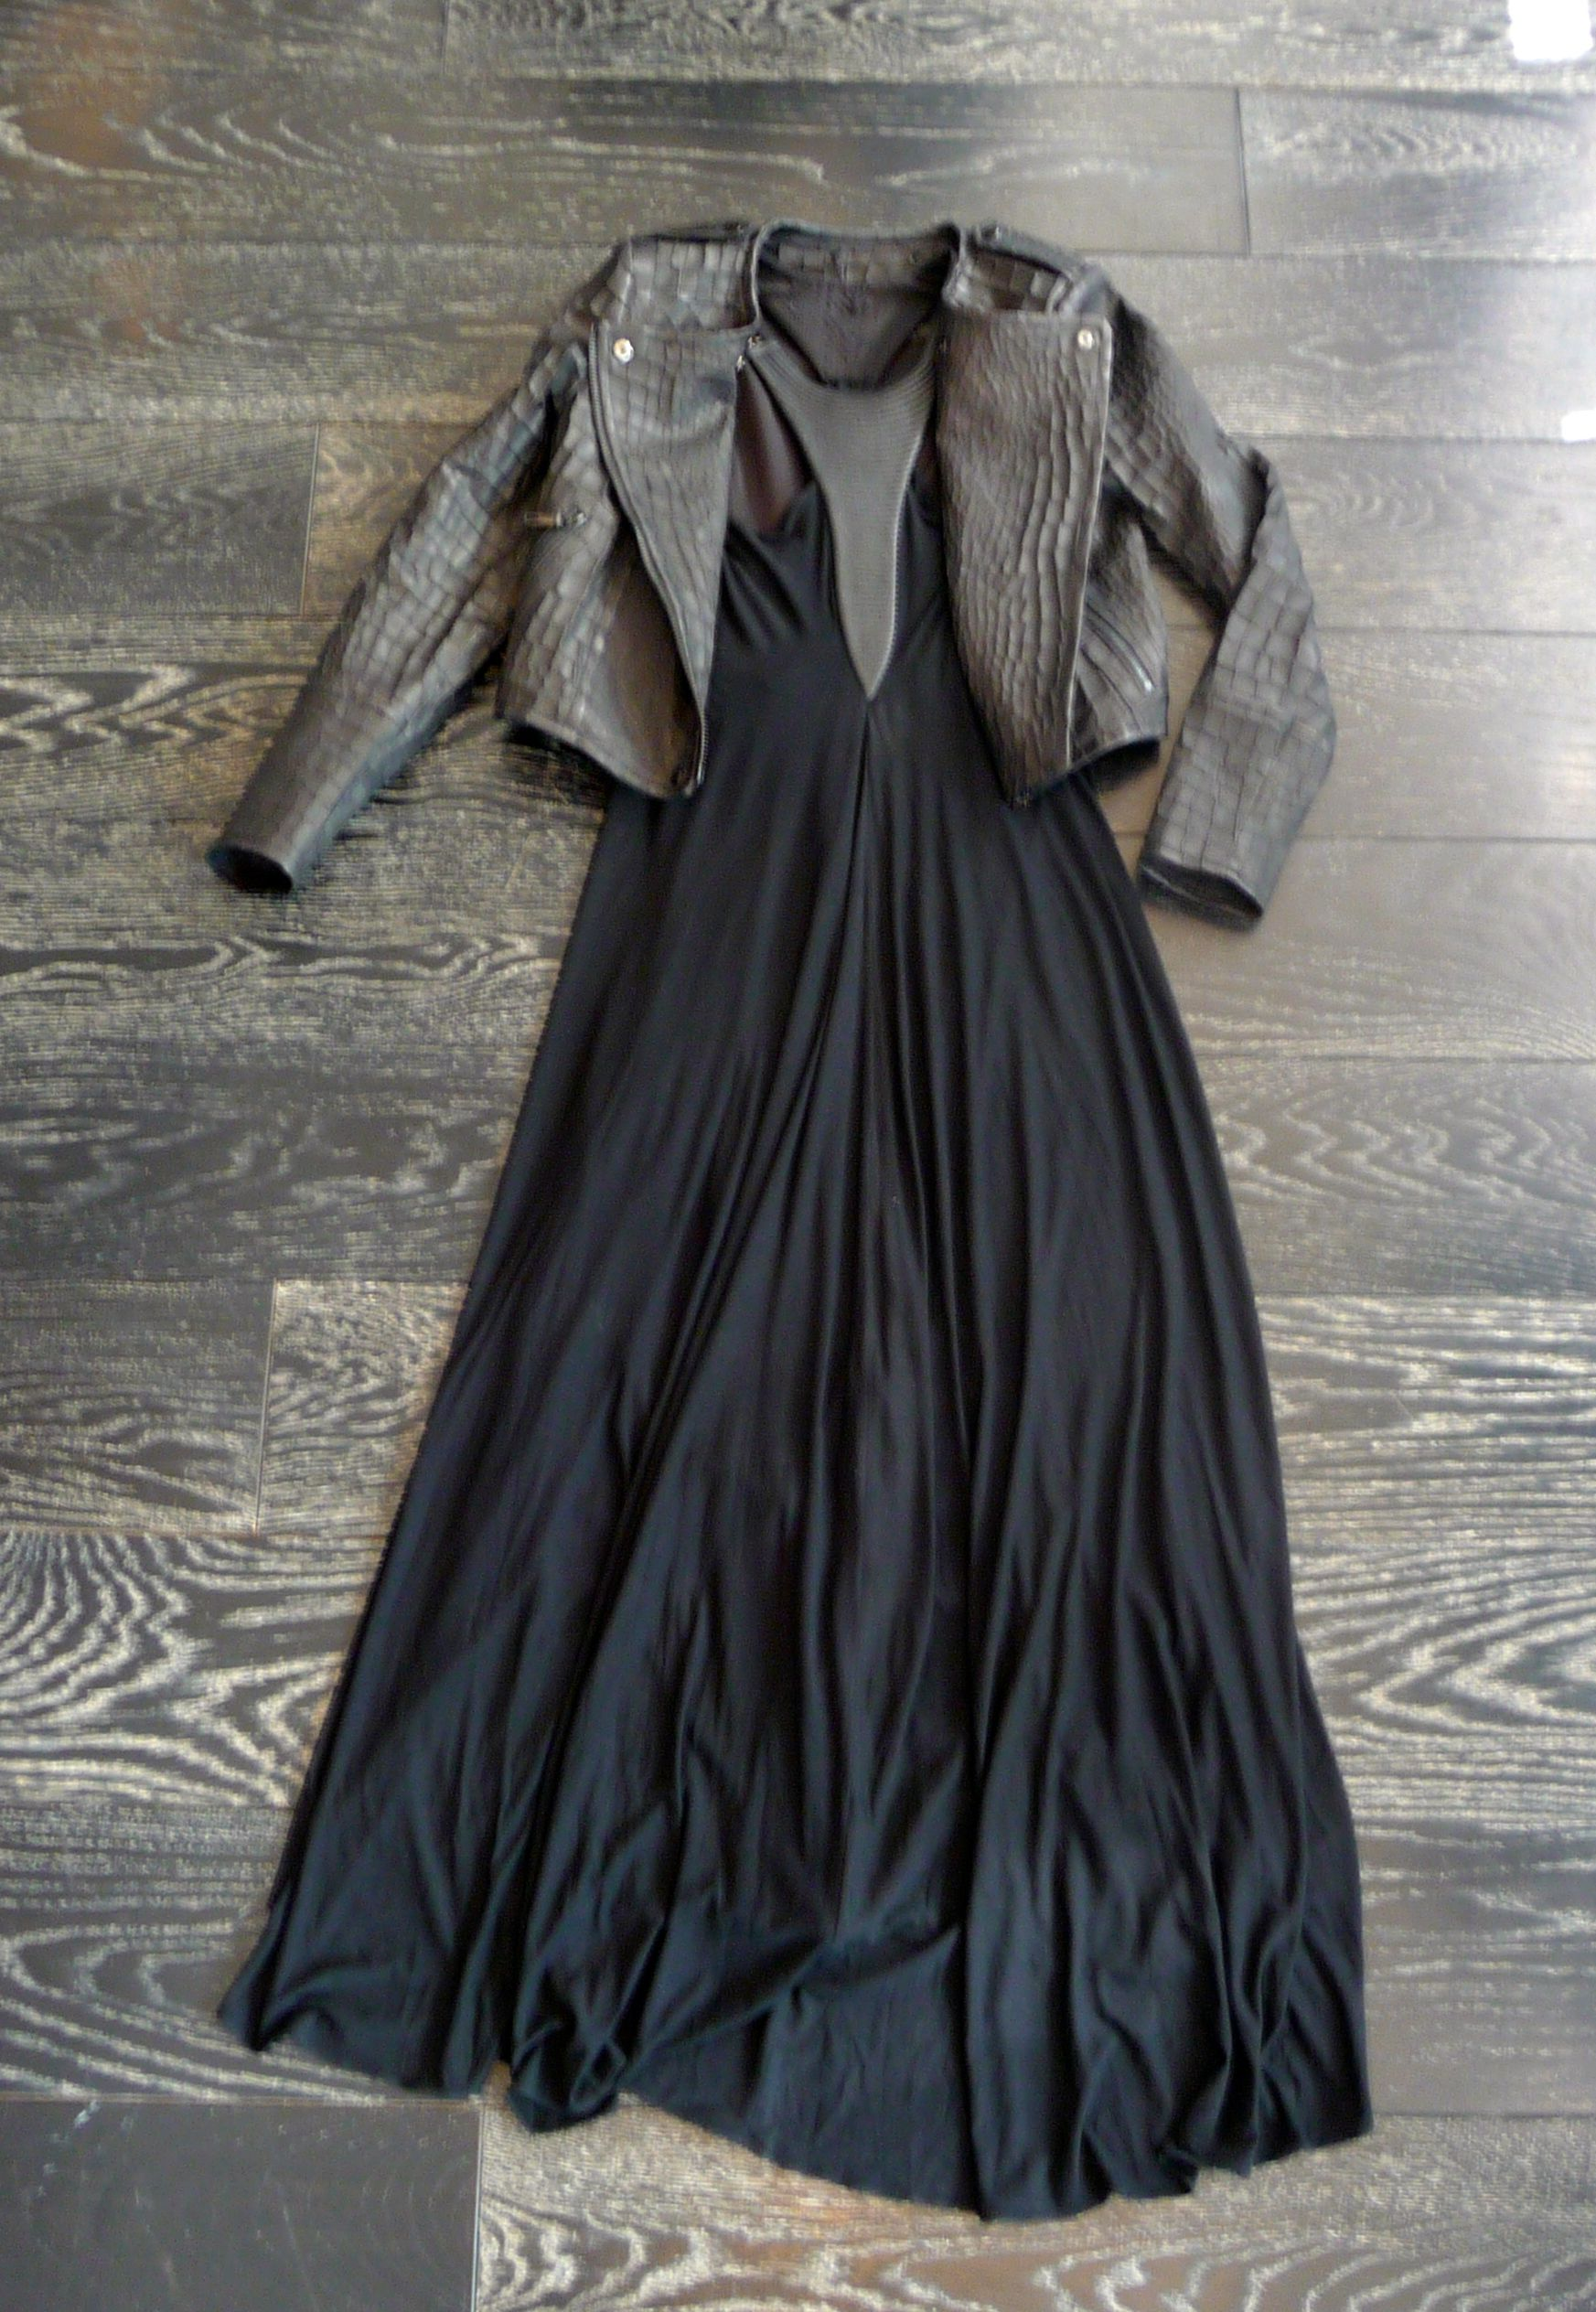 Similar To The Ever Popular Leather And Lace We Give You Leather And Length Wear Your Favorite Maxi Dress Year Round We Maxi Dress Leather And Lace Fashion [ 2528 x 1745 Pixel ]